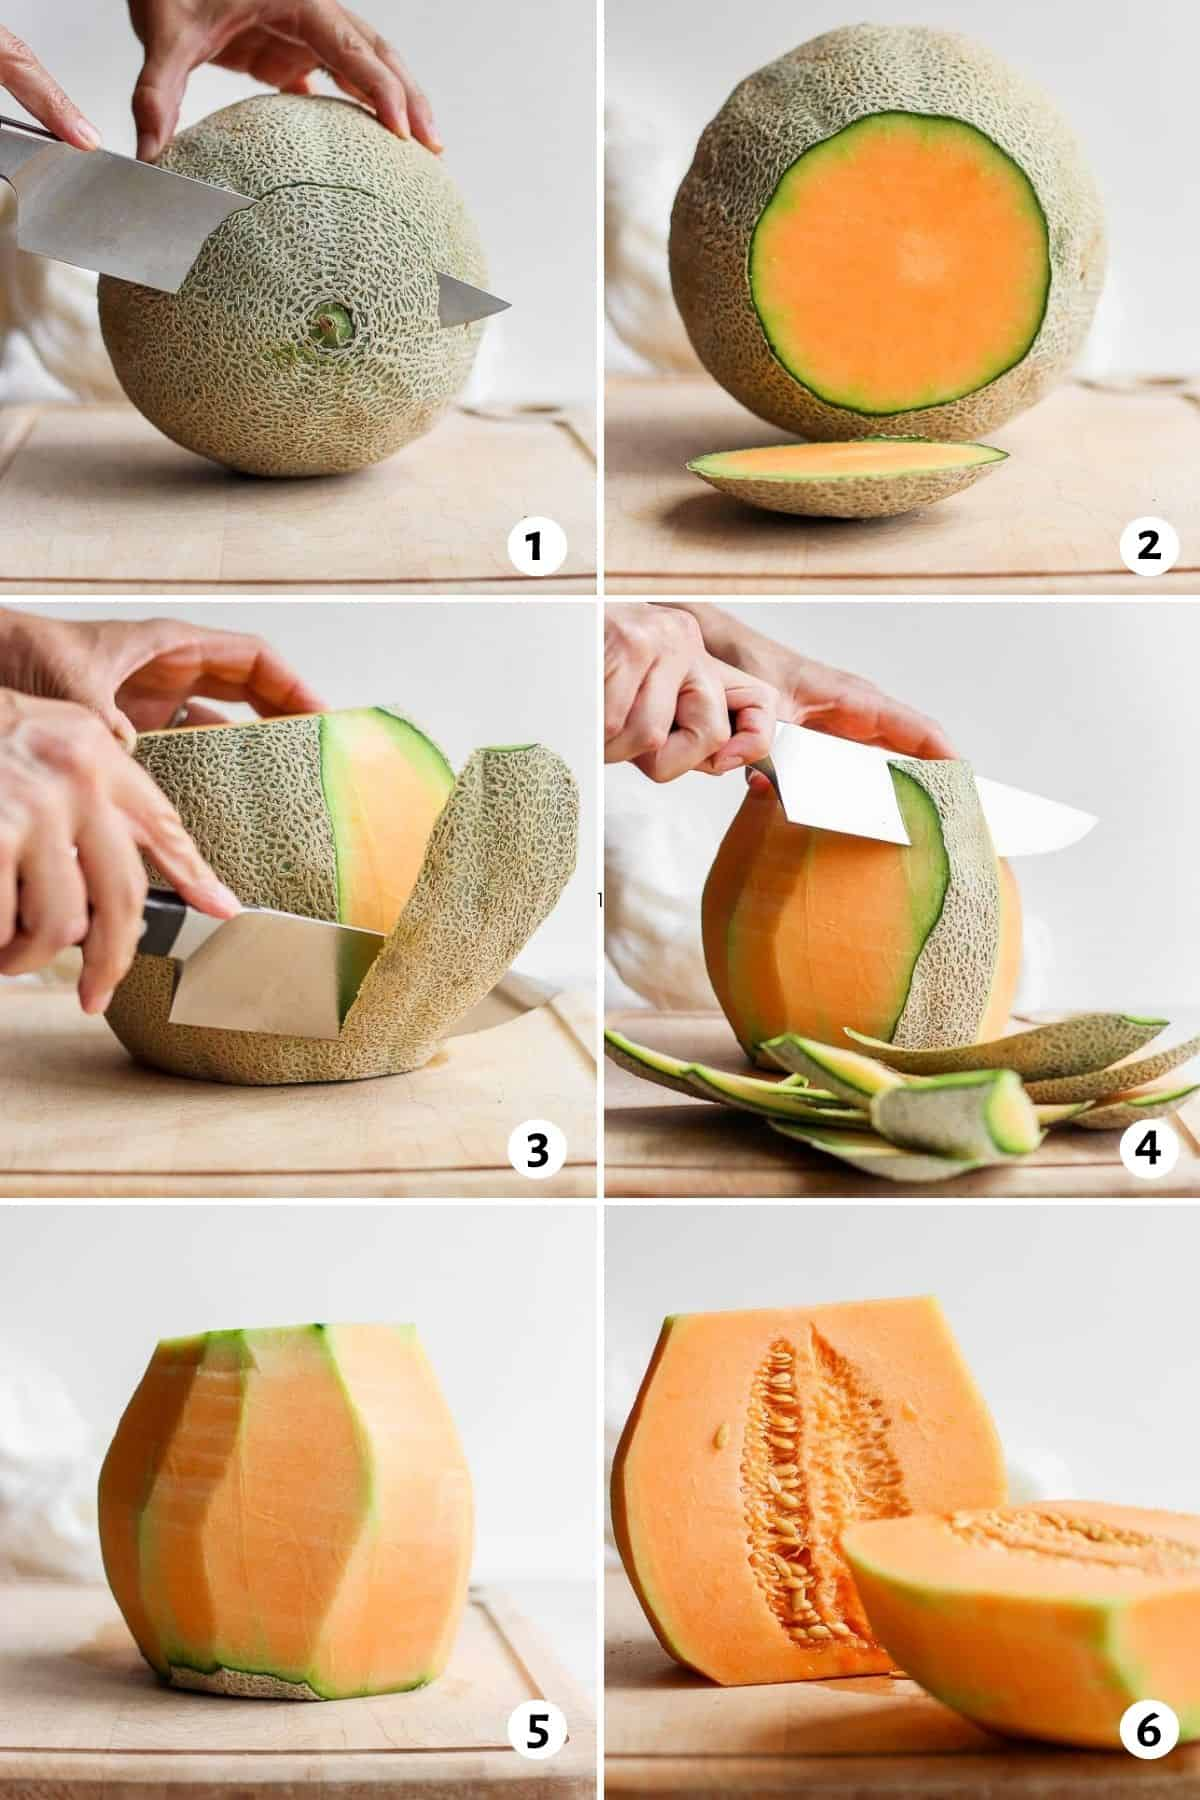 Step by step shot for how to cut a melon